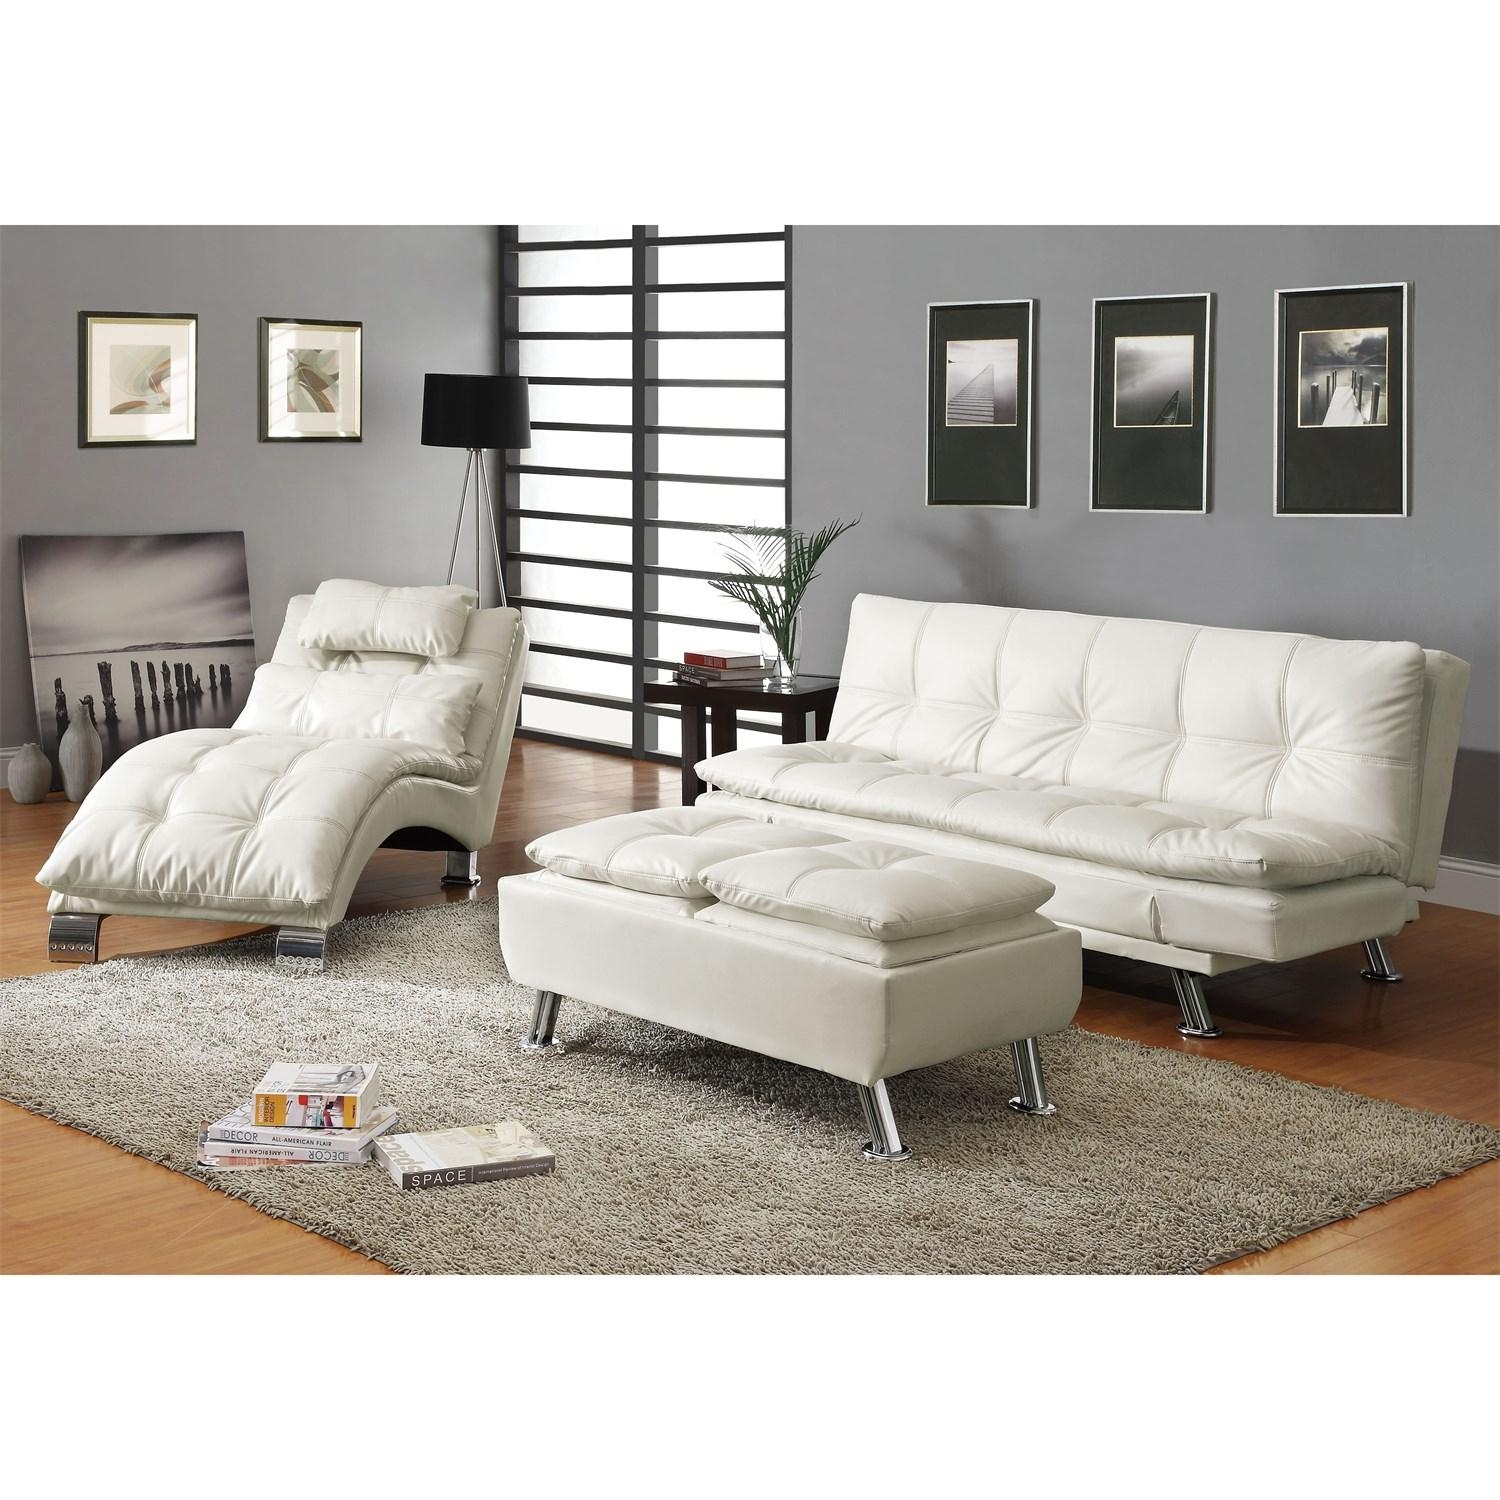 Coaster Furniture 300291 Contemporary Futon Sleeper Sofa Bed In Pertaining To Coaster Futon Sofa Beds (View 10 of 20)